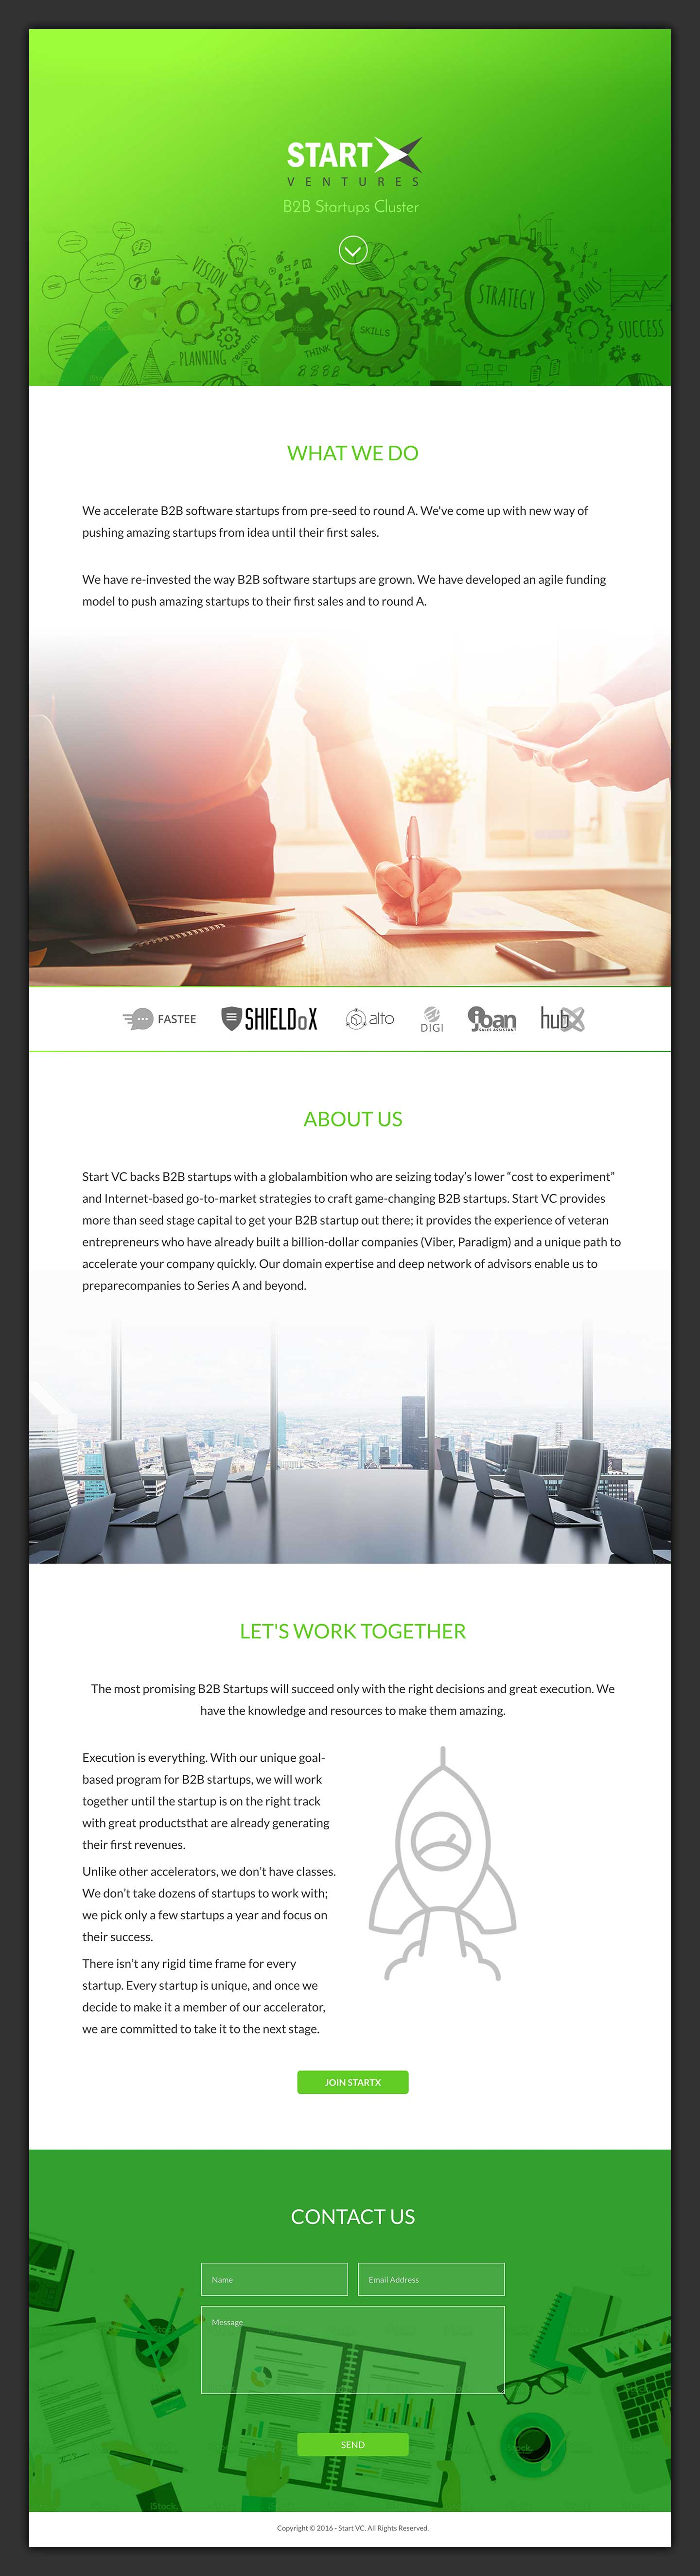 StartX Ventures Landing Page